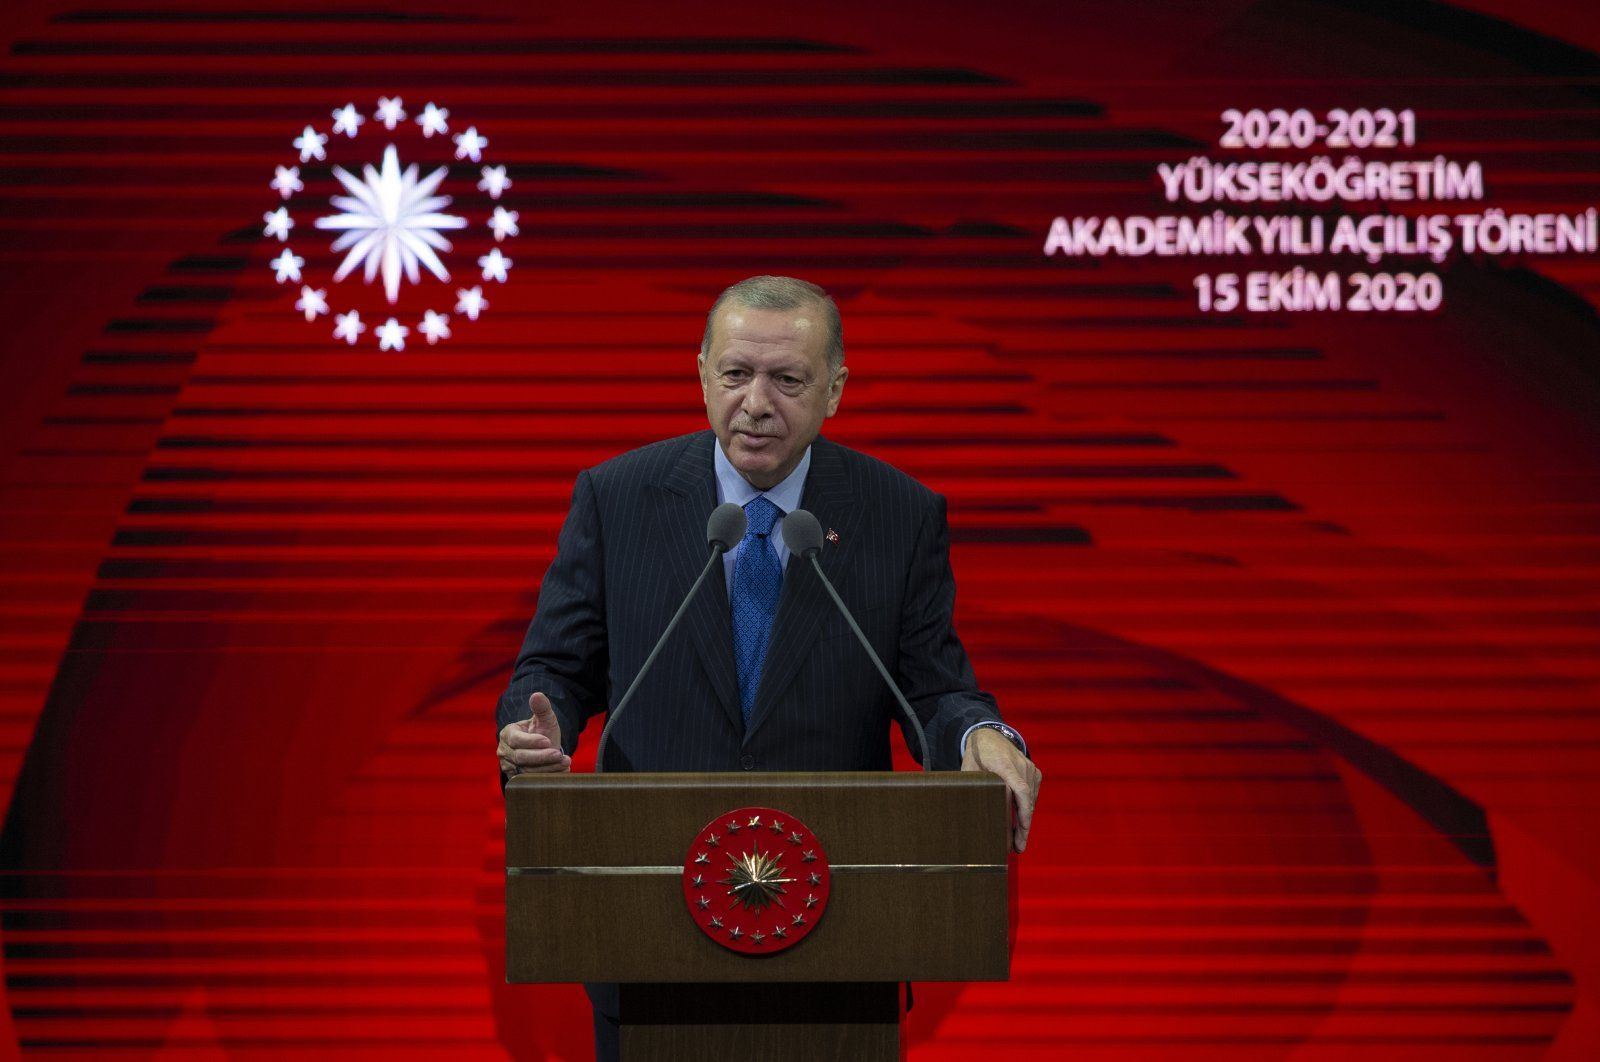 President Recep Tayyip Erdoğan speaks at the opening ceremony of the 2020-2021 higher education academic year in the capital Ankara, Turkey, Oct. 15, 2020. (AA Photo)